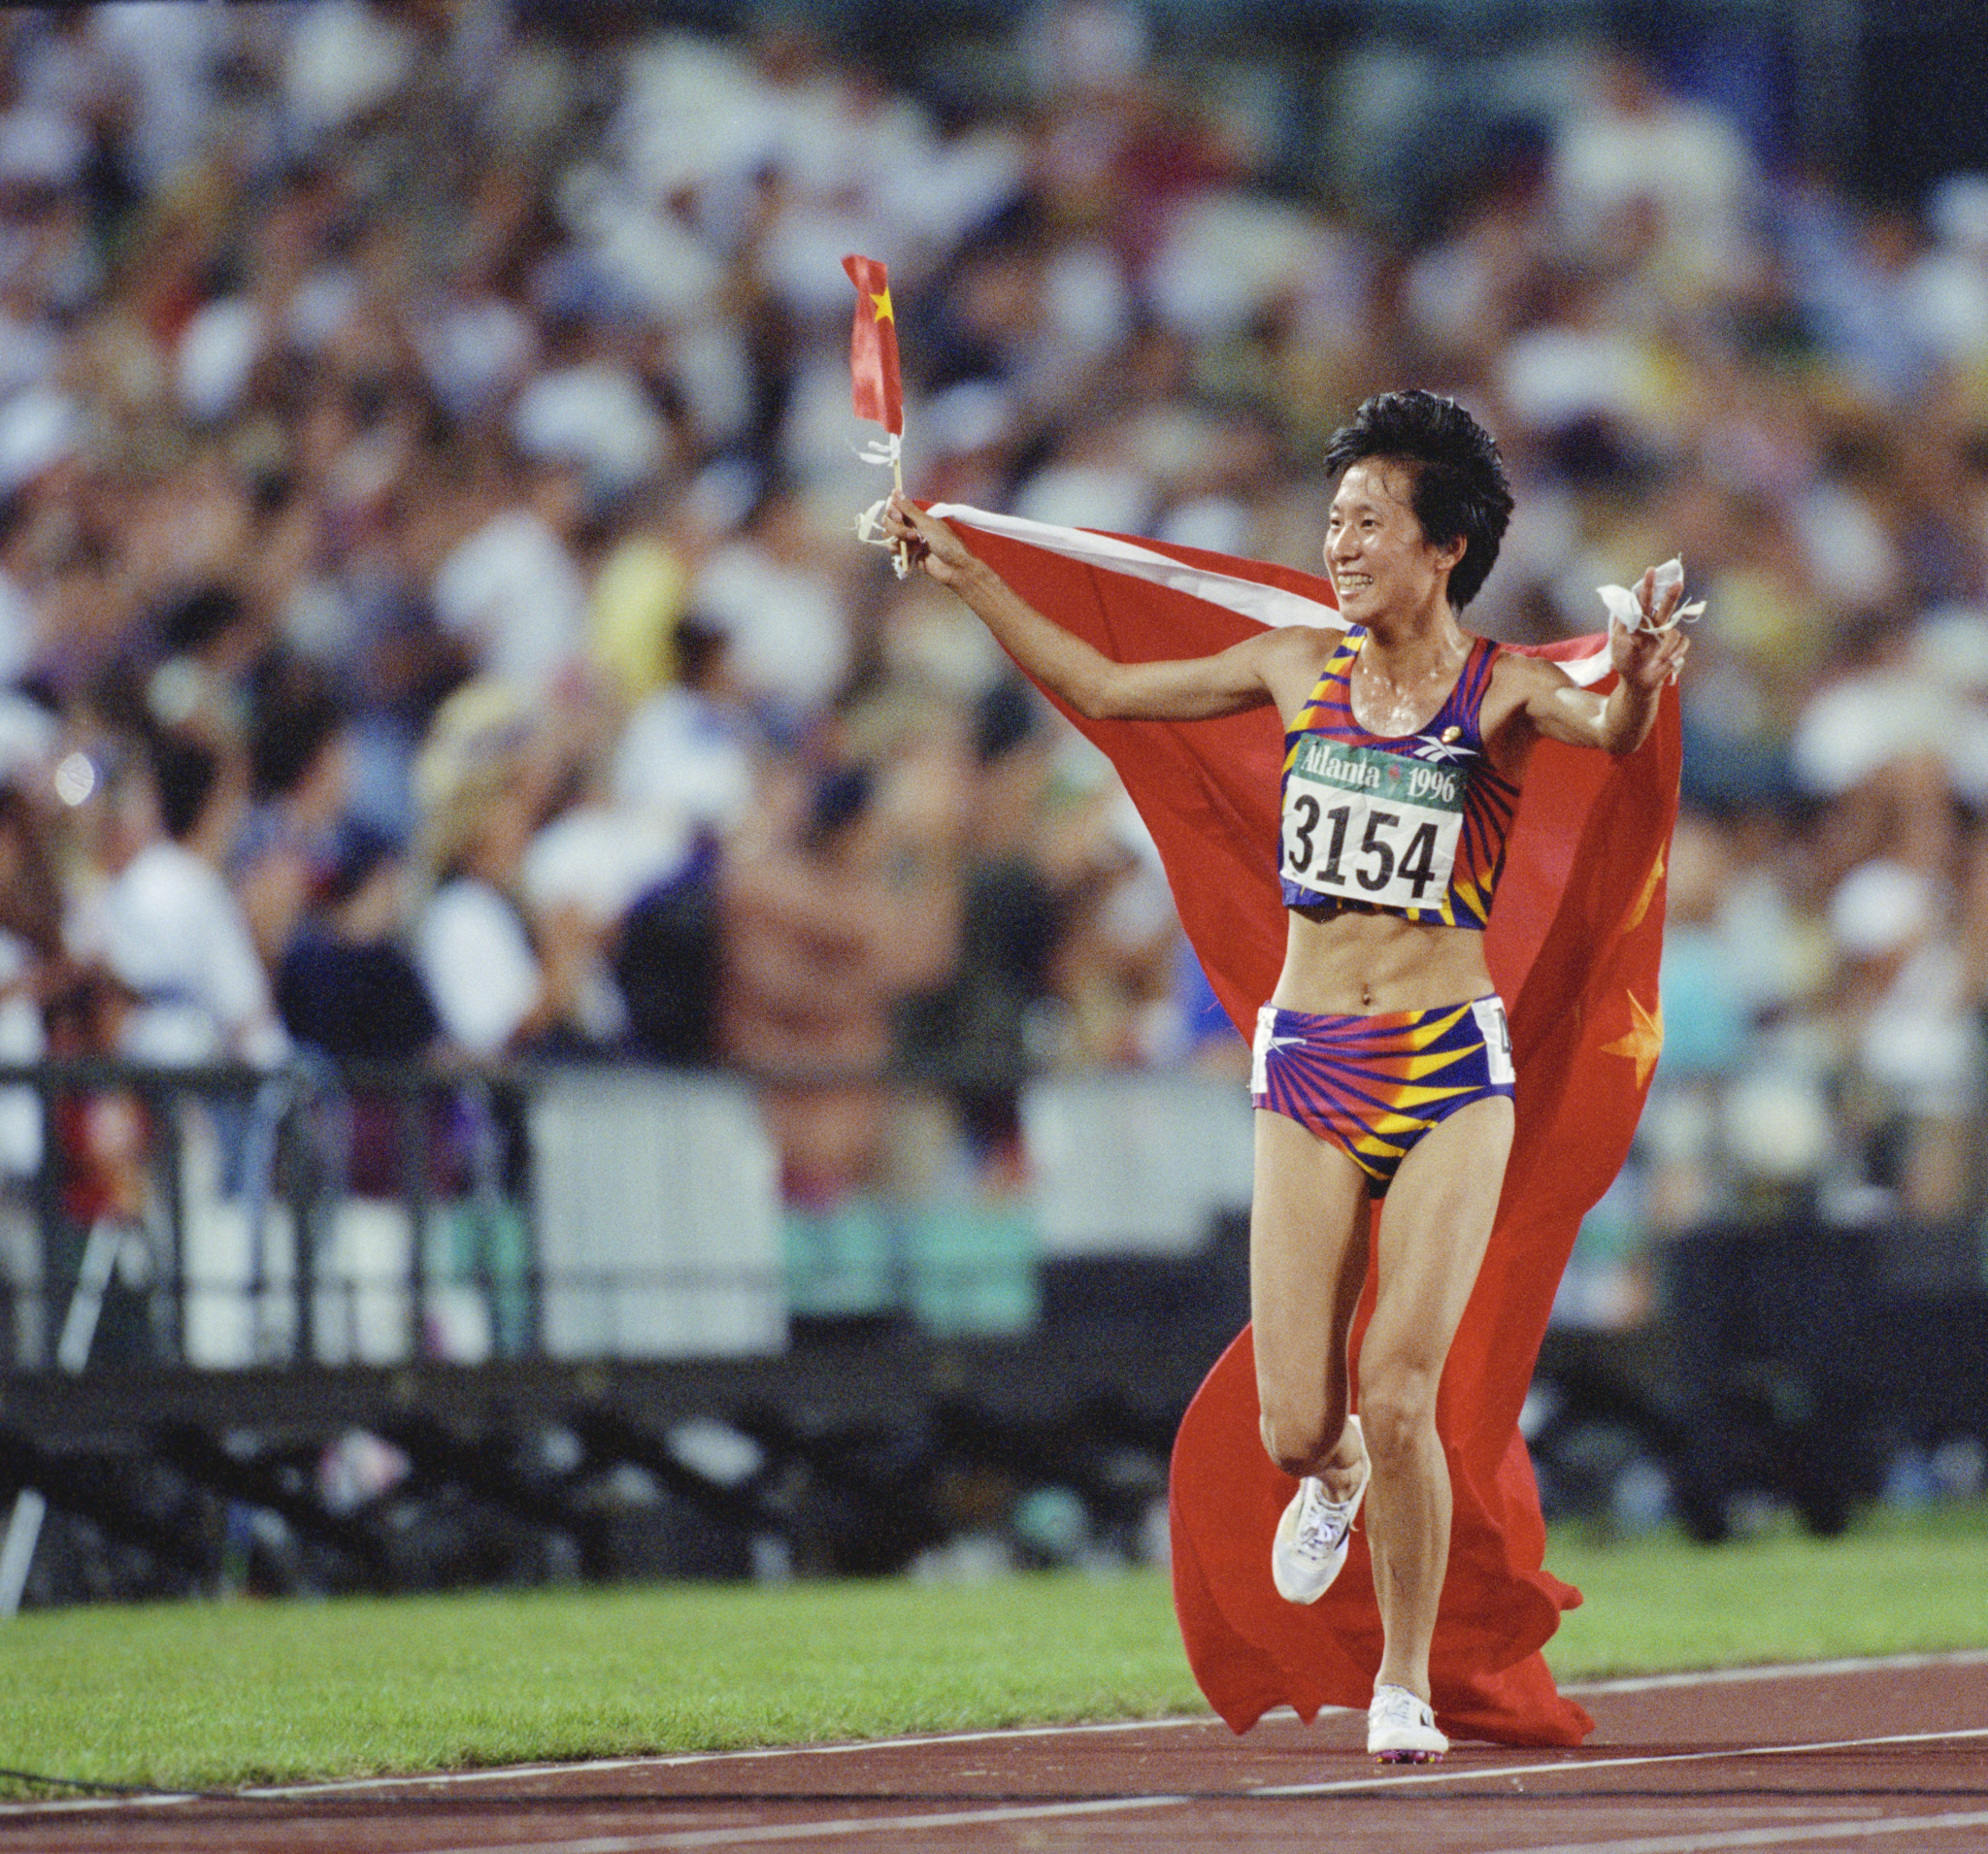 Wang Junxia, who seemingly admitted to doping during her career in a letter last year, beat Paula Radcliffe in the 5,000m at Atlanta 1996 and set a world record for the 10,000m that stood for 23 years ©Getty Images